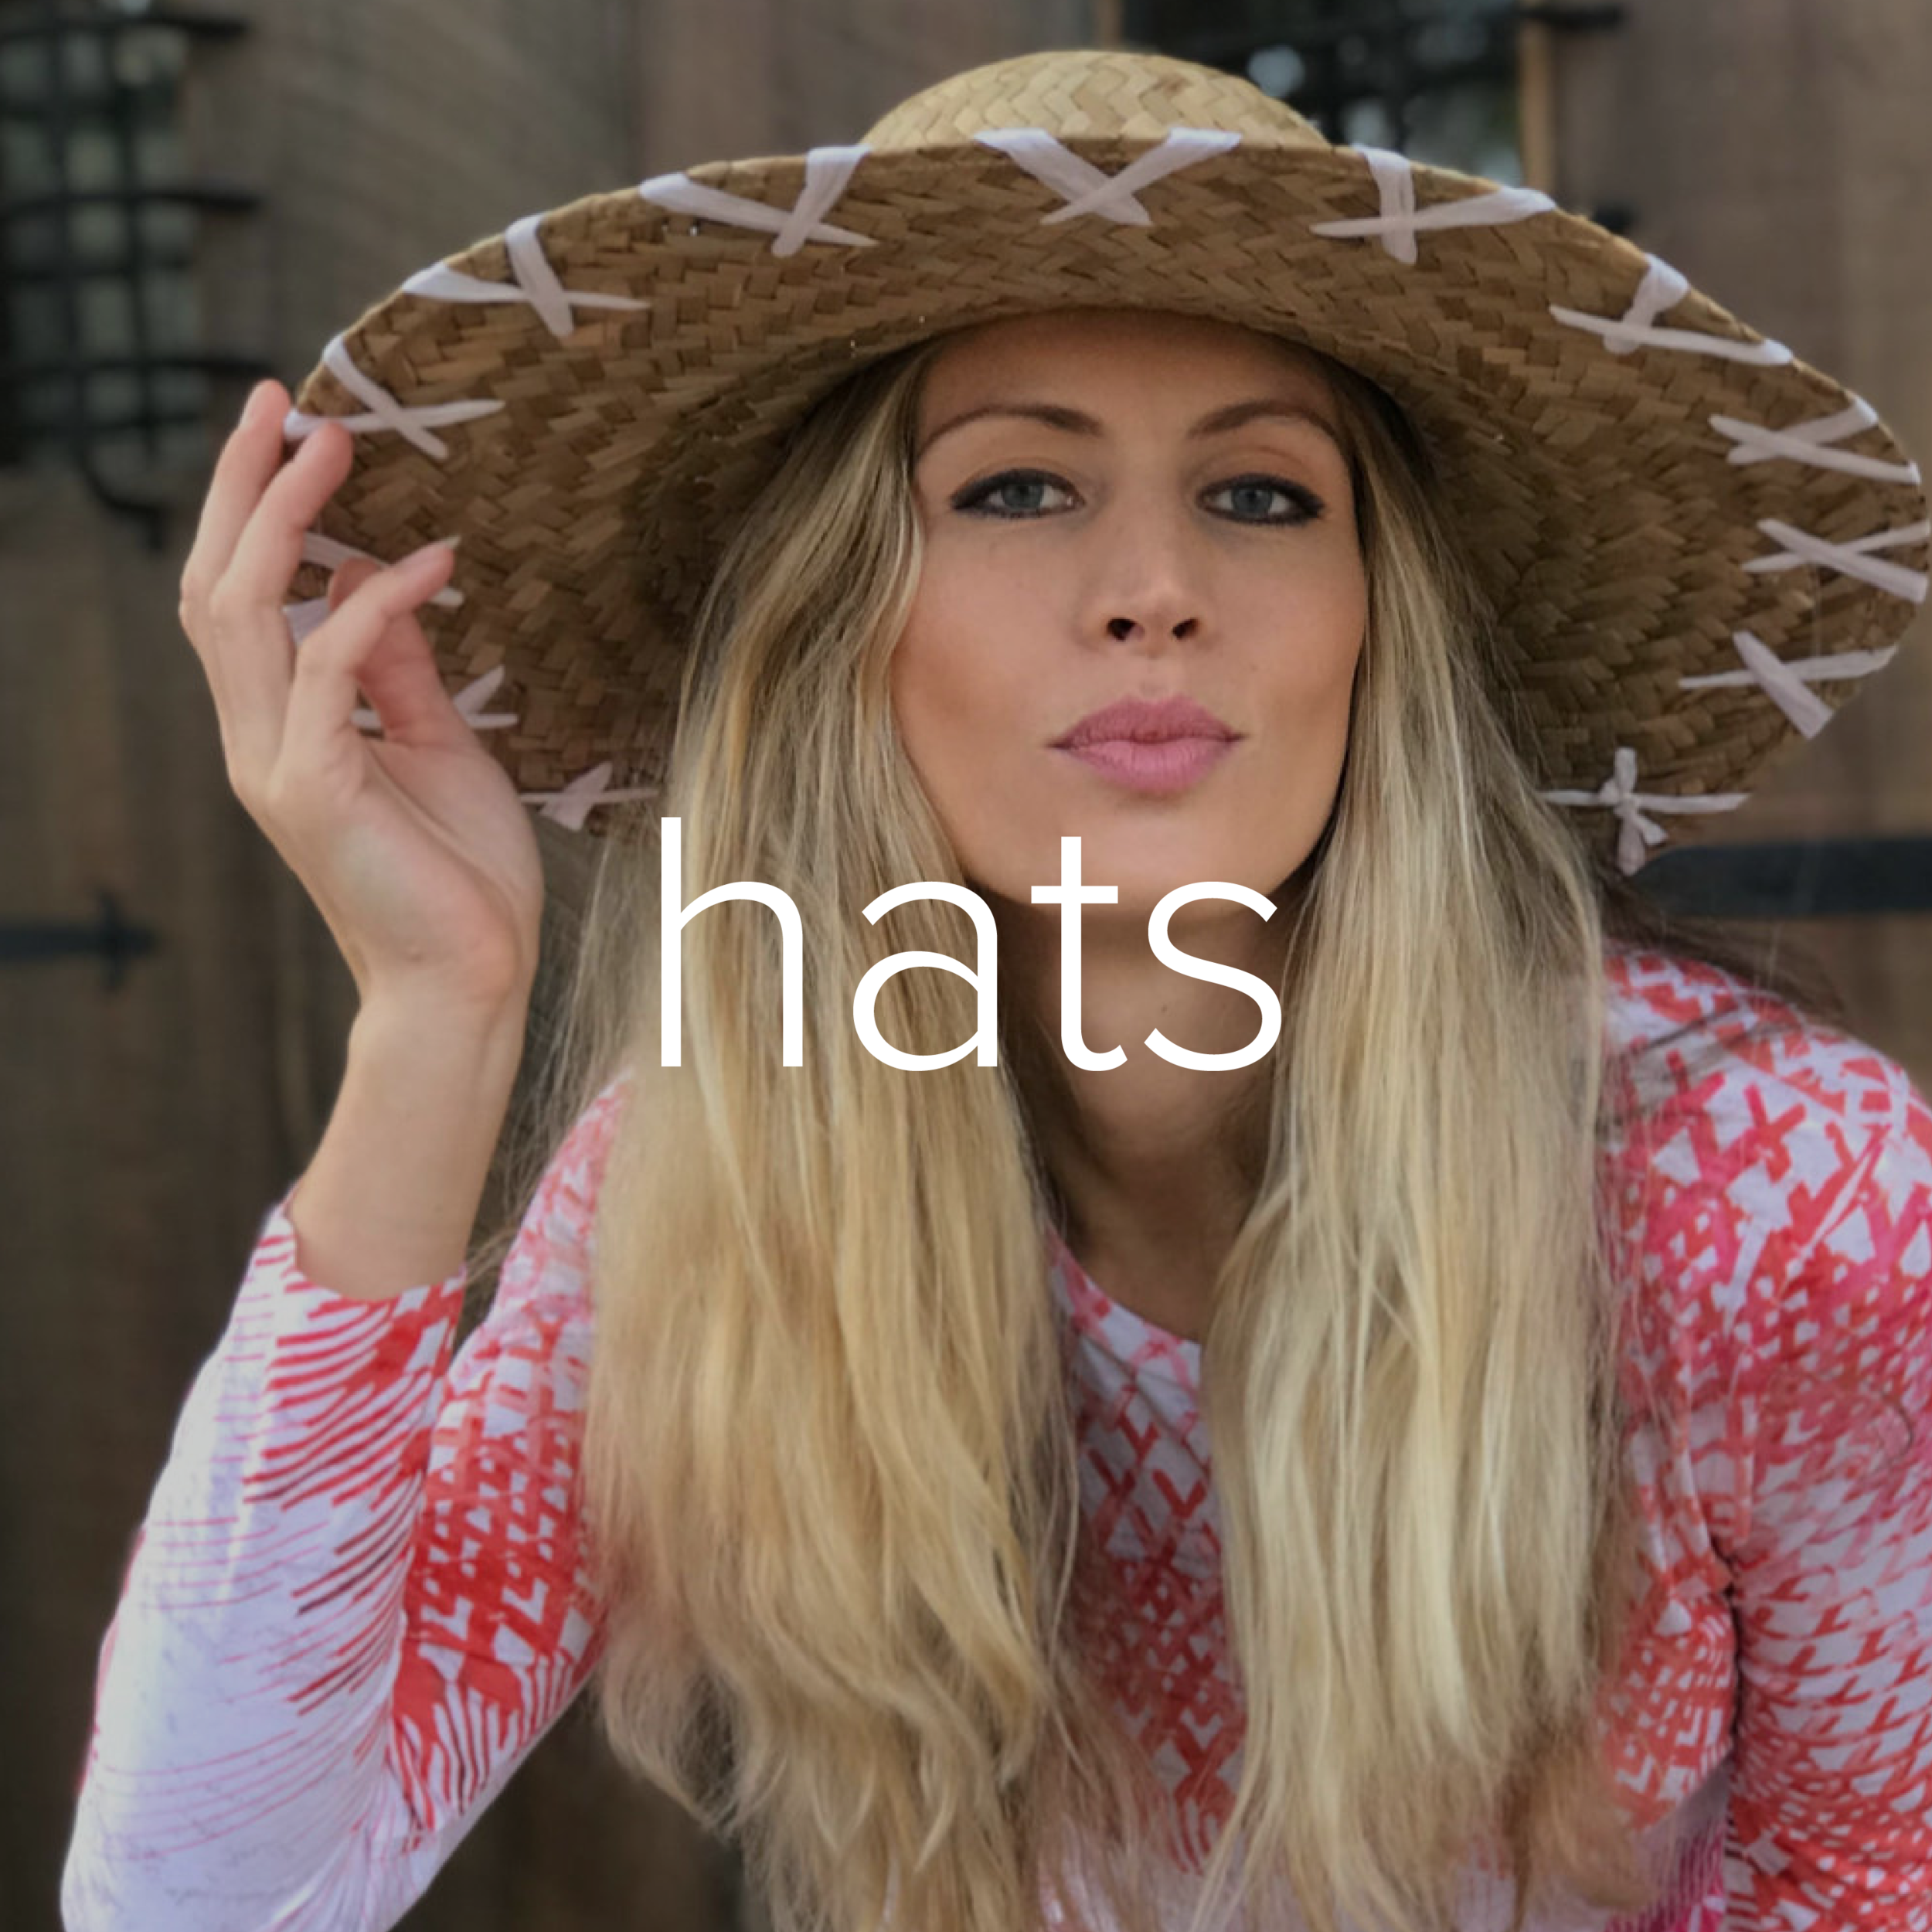 hats-01.png